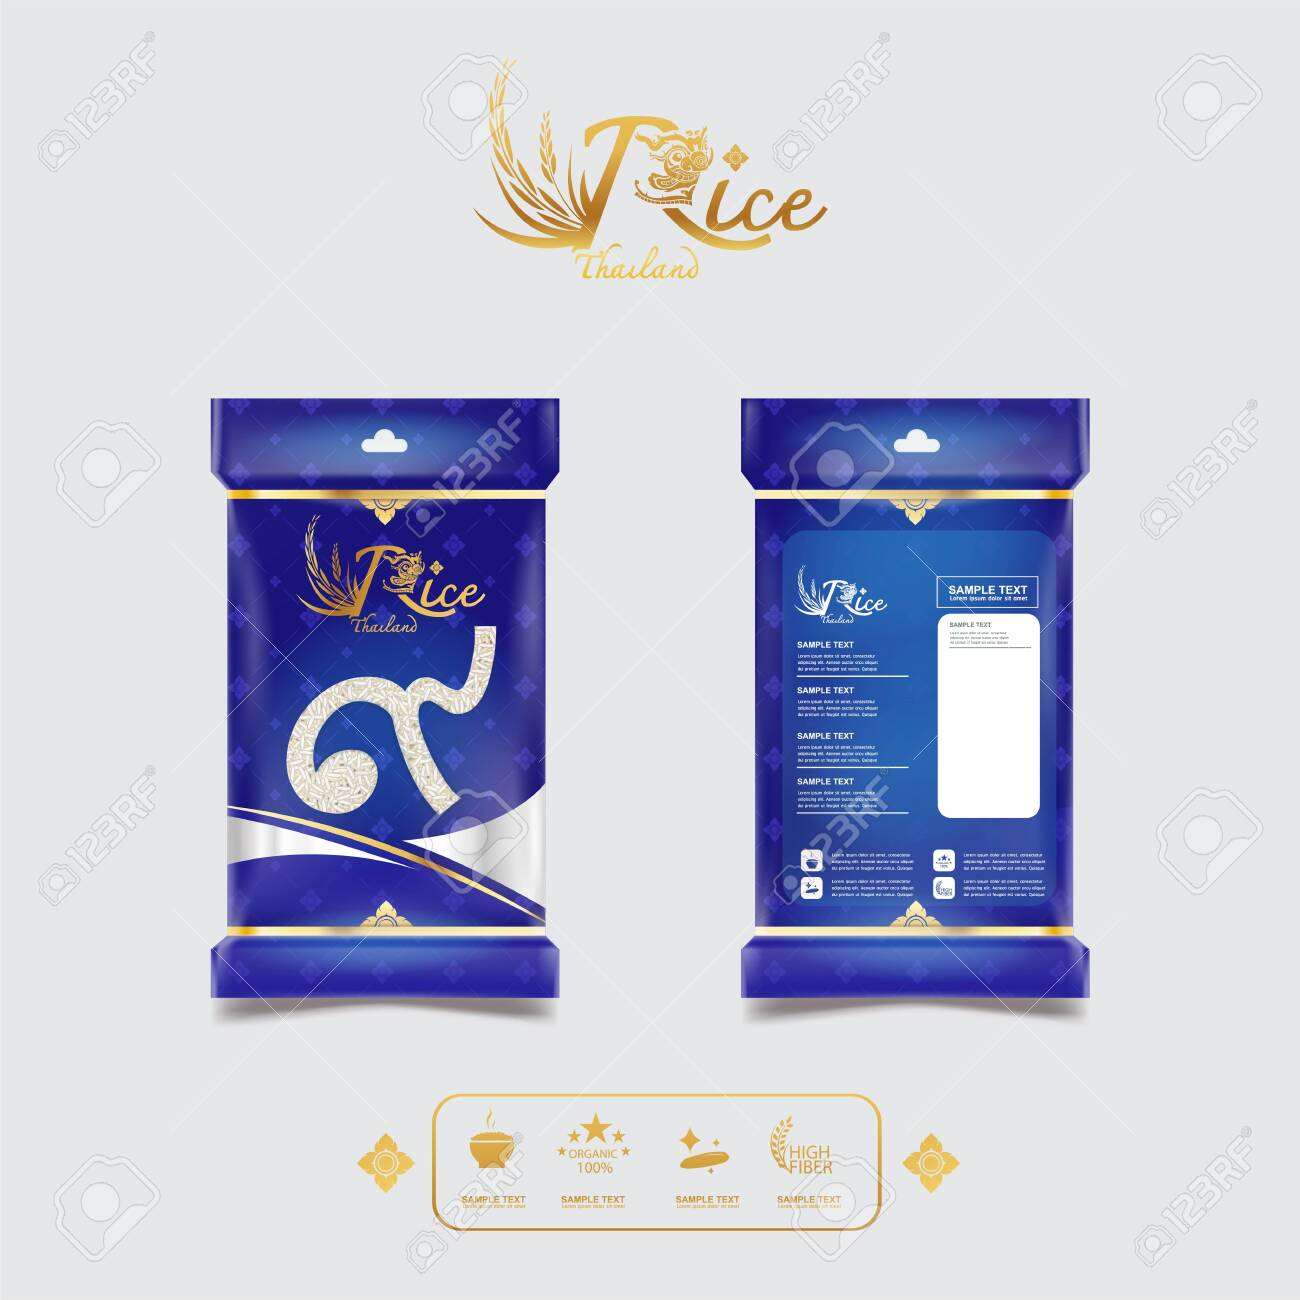 Rice Style Thailand Product Design Packaging Template and Background Concept. - 137636450